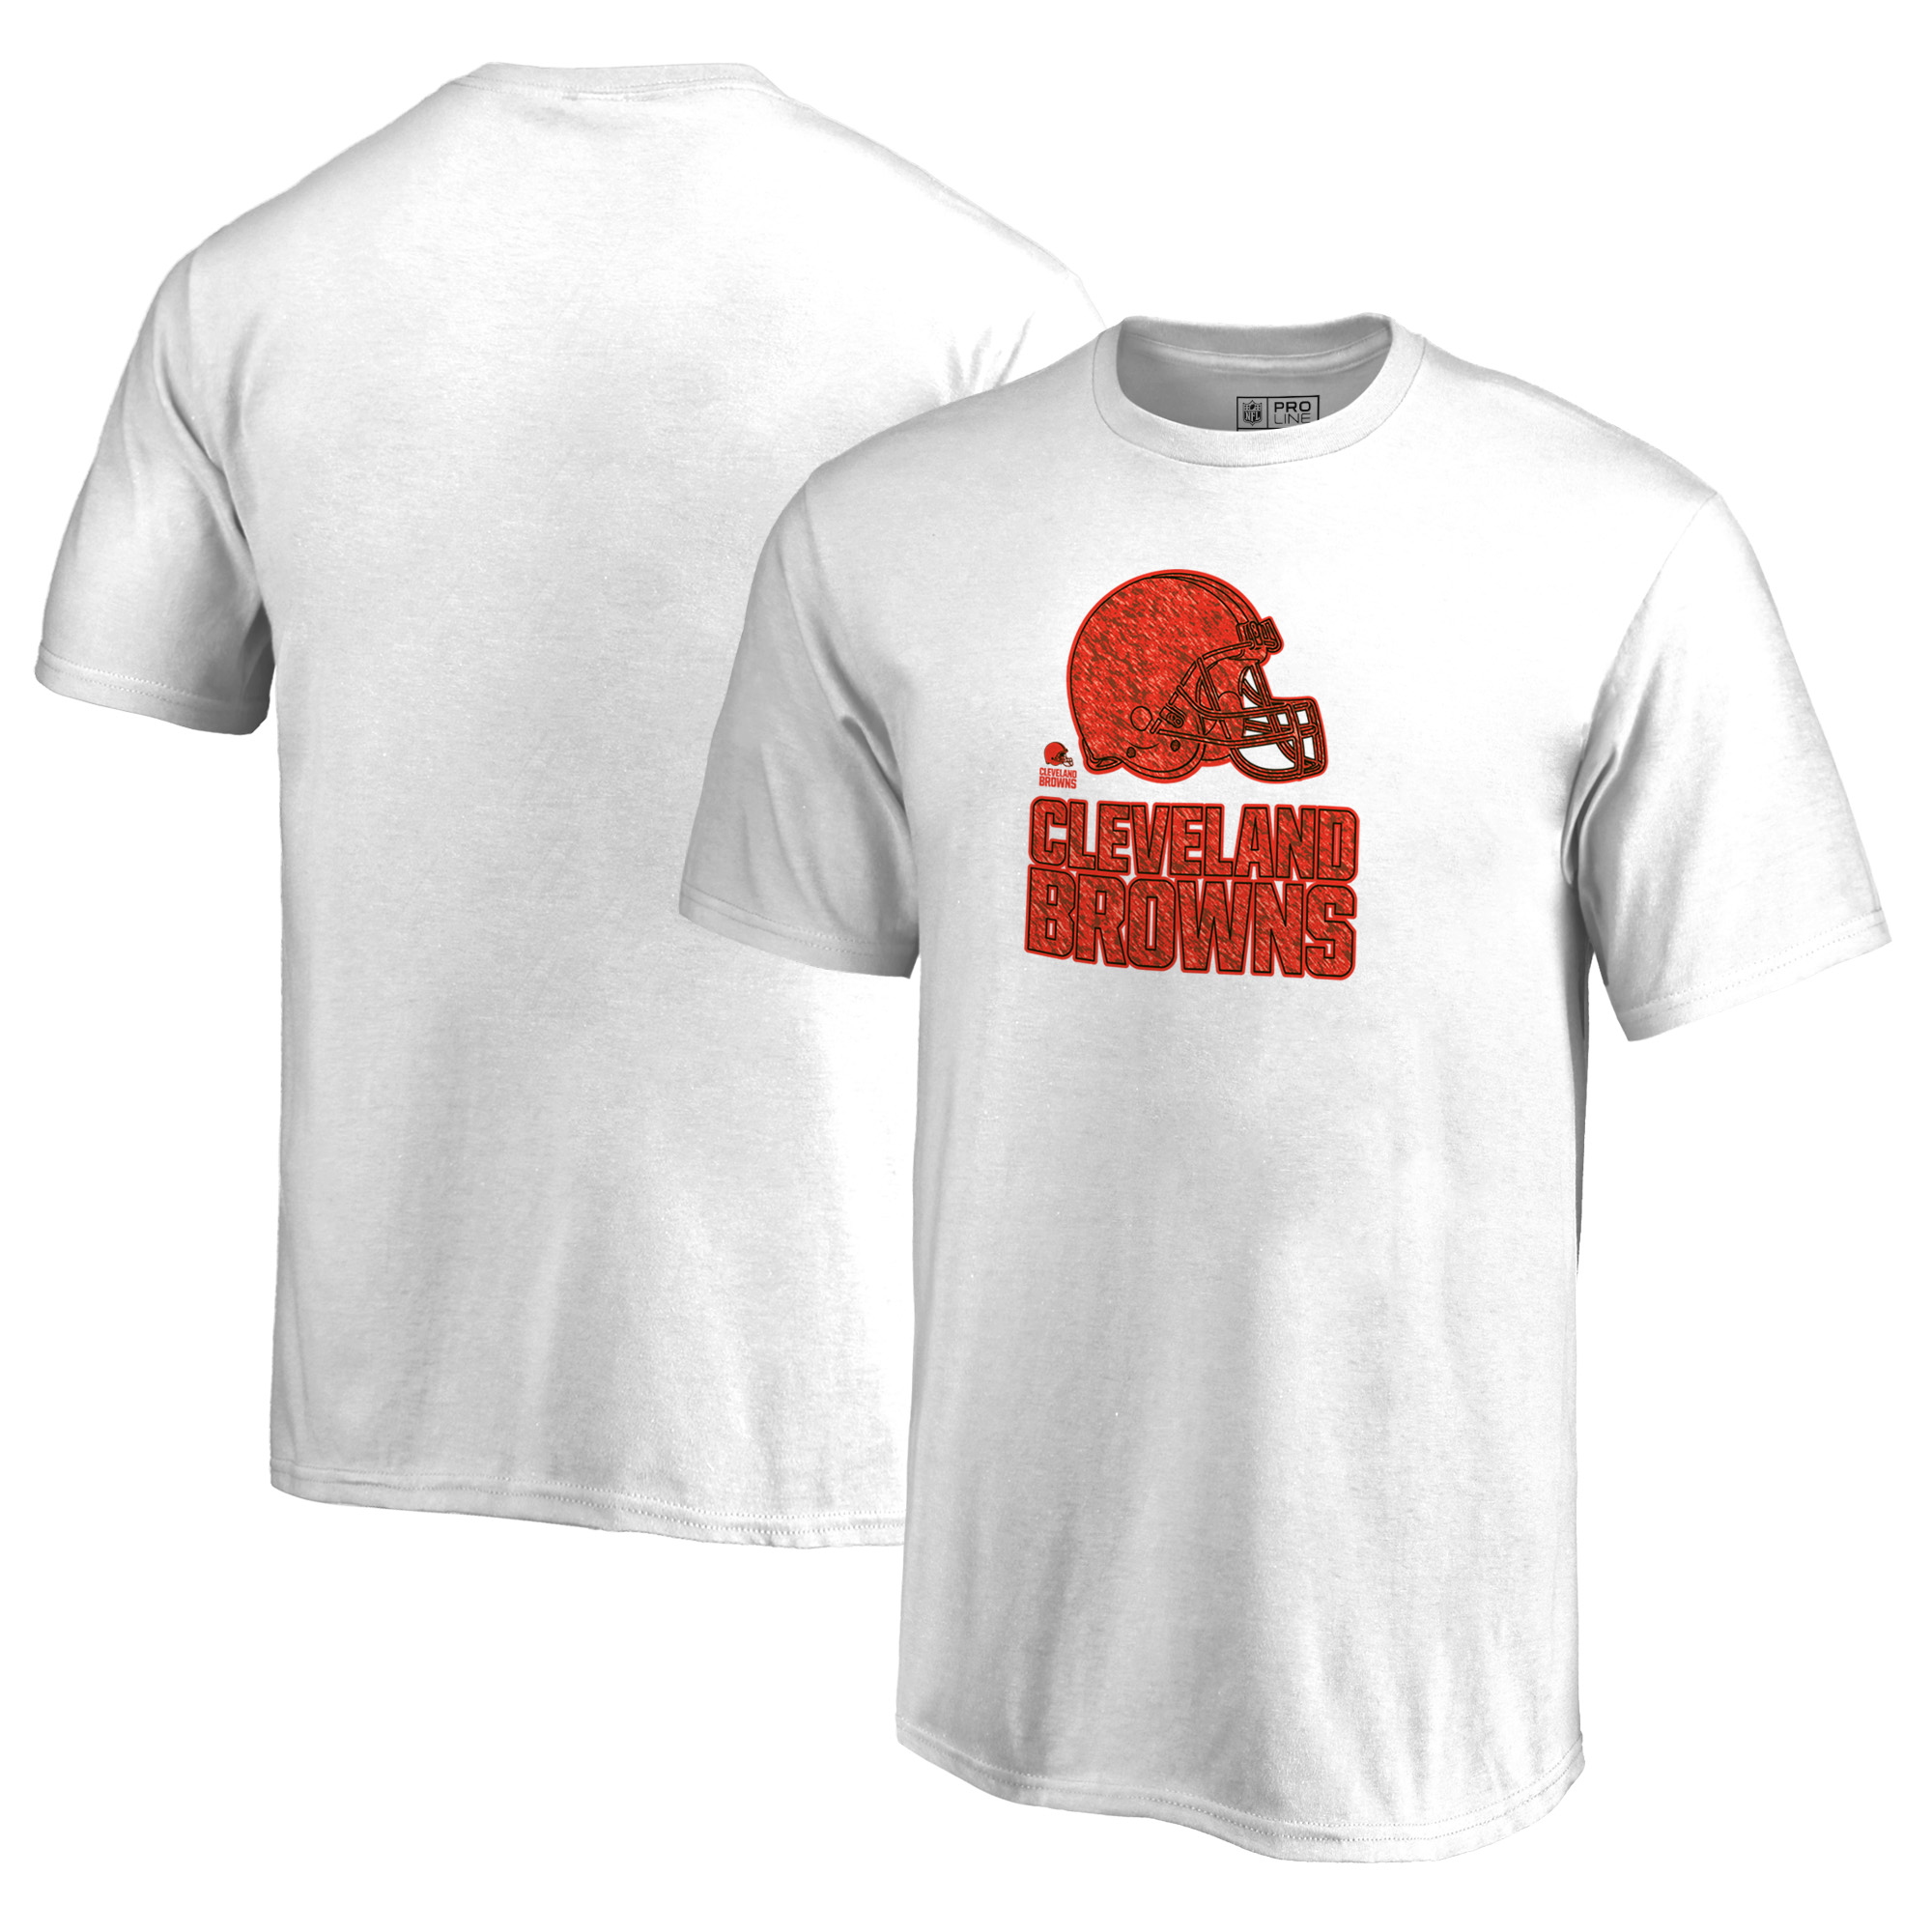 Cleveland Browns NFL Pro Line by Fanatics Branded Youth Training Camp Hookup T-Shirt - White